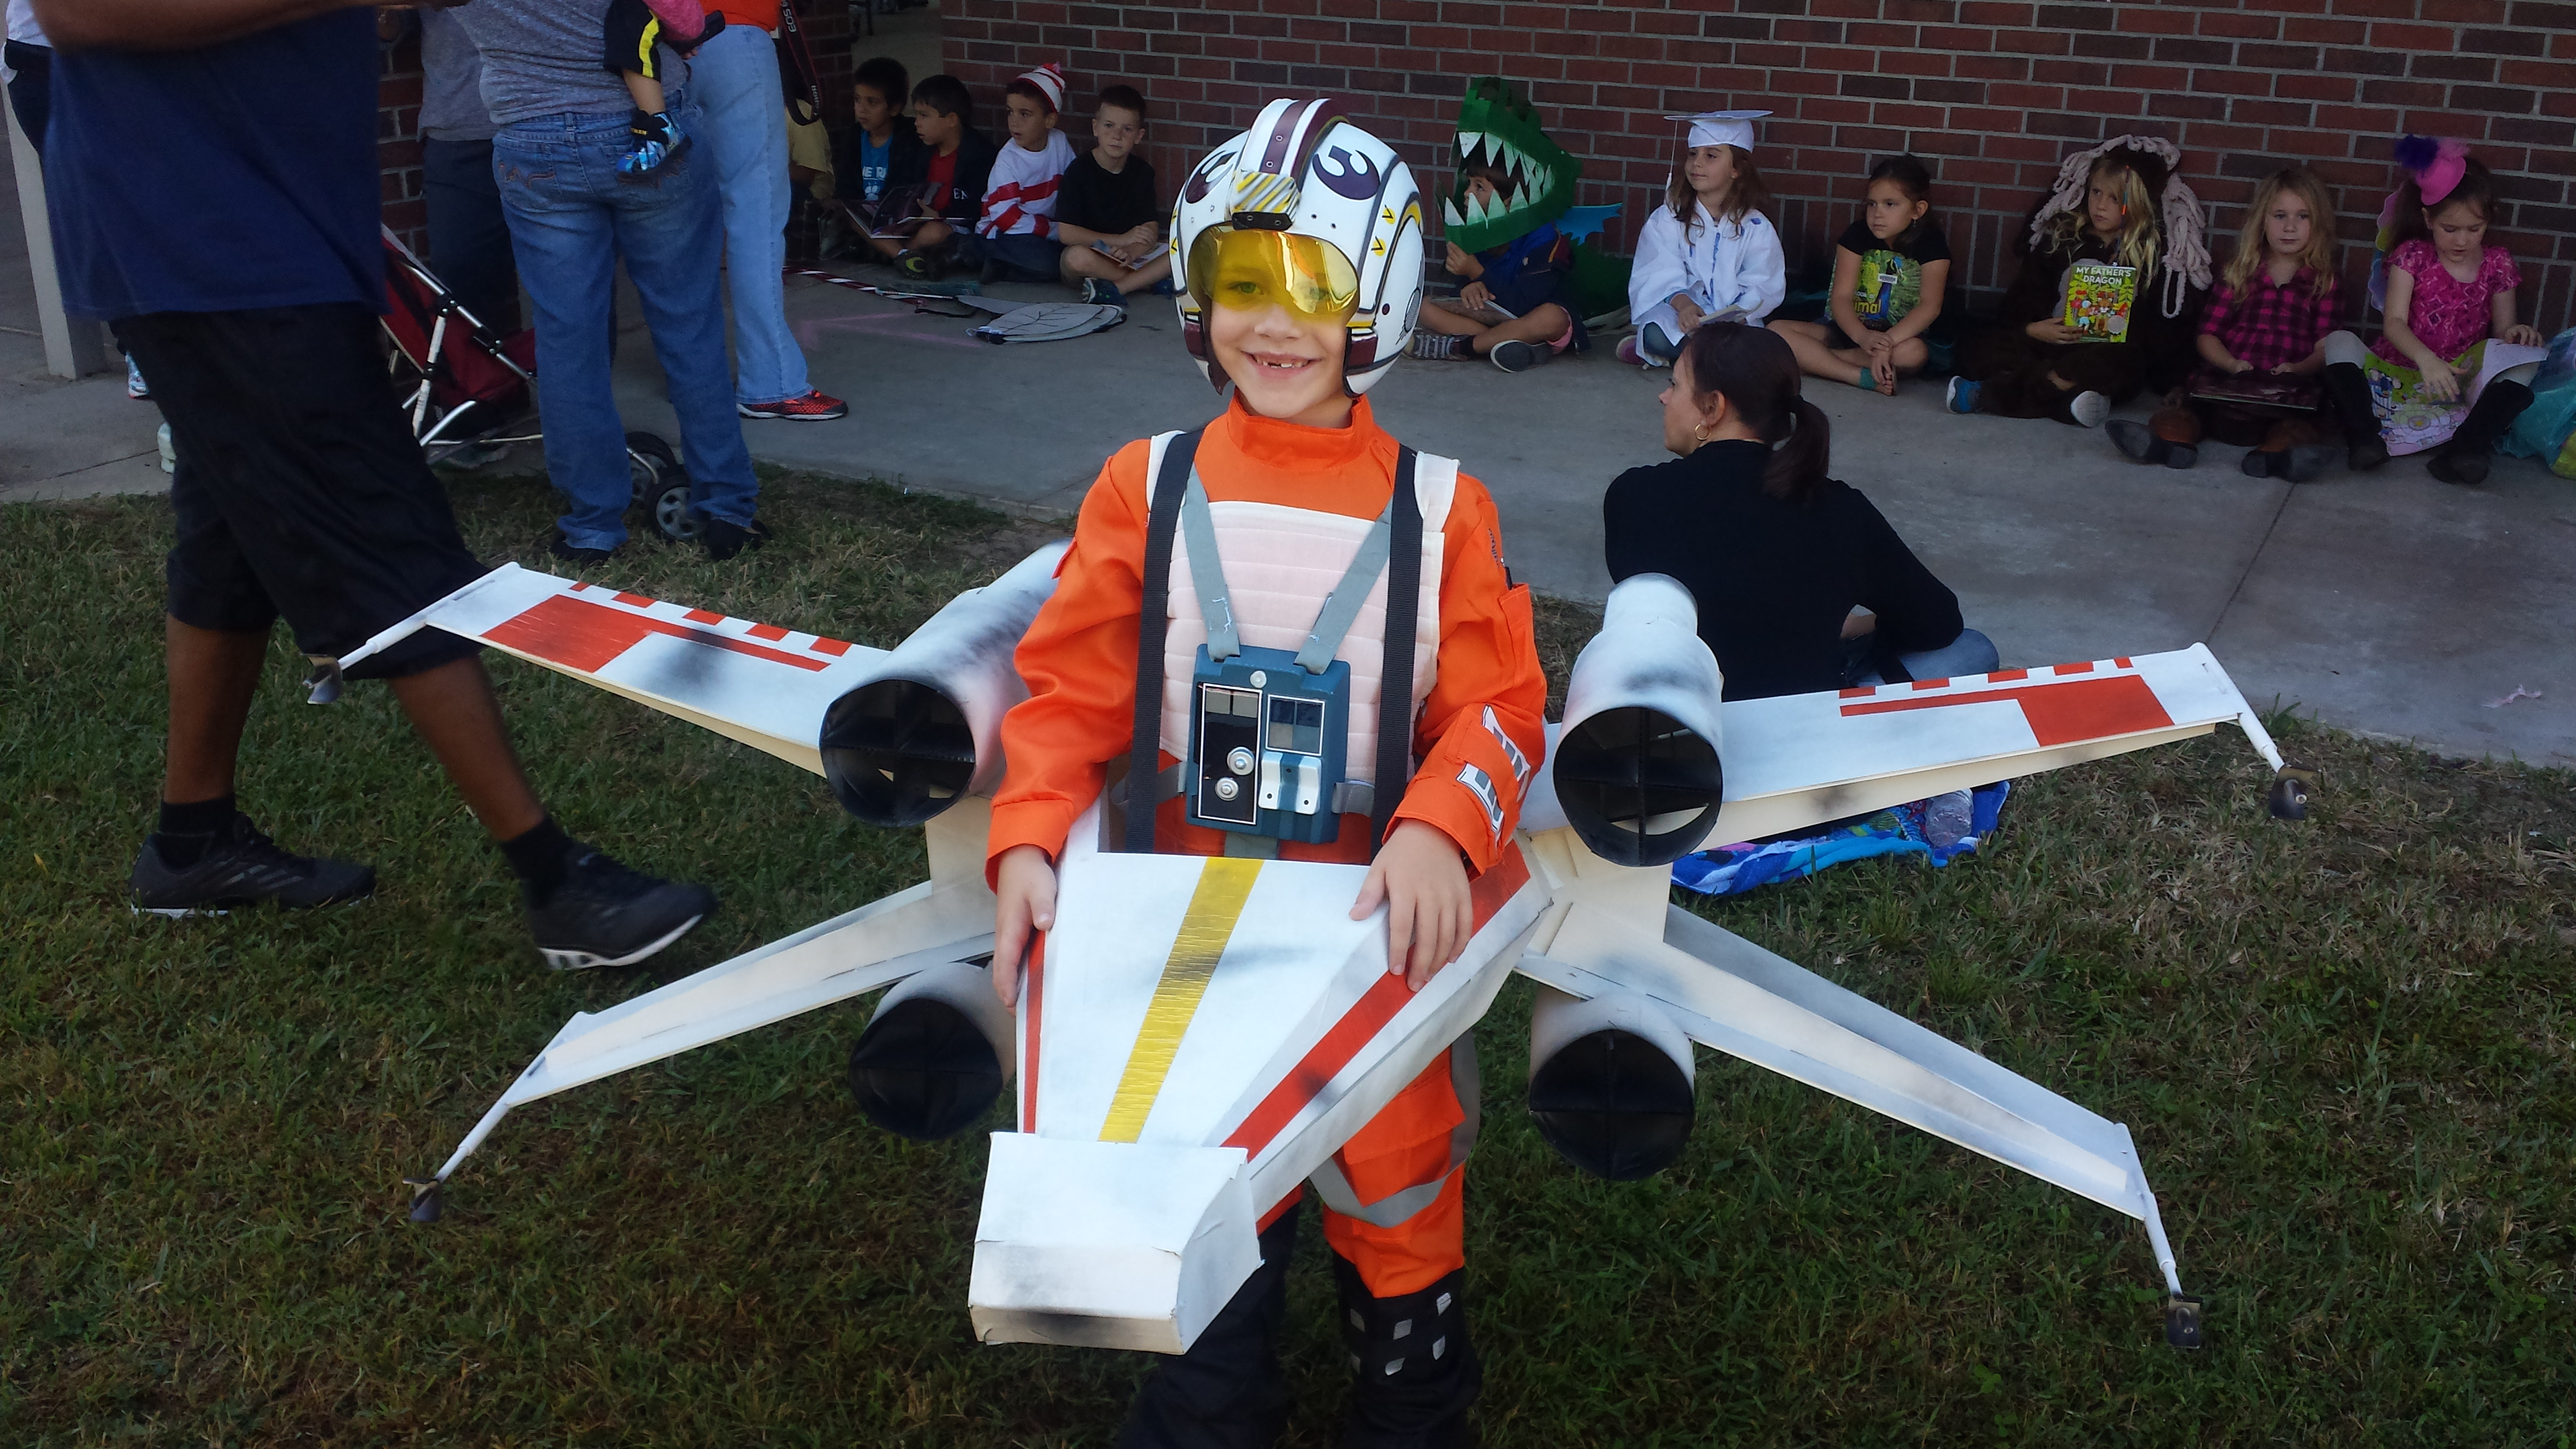 Adorable X-Wing Pilot Costume Comes Complete with Real Wings